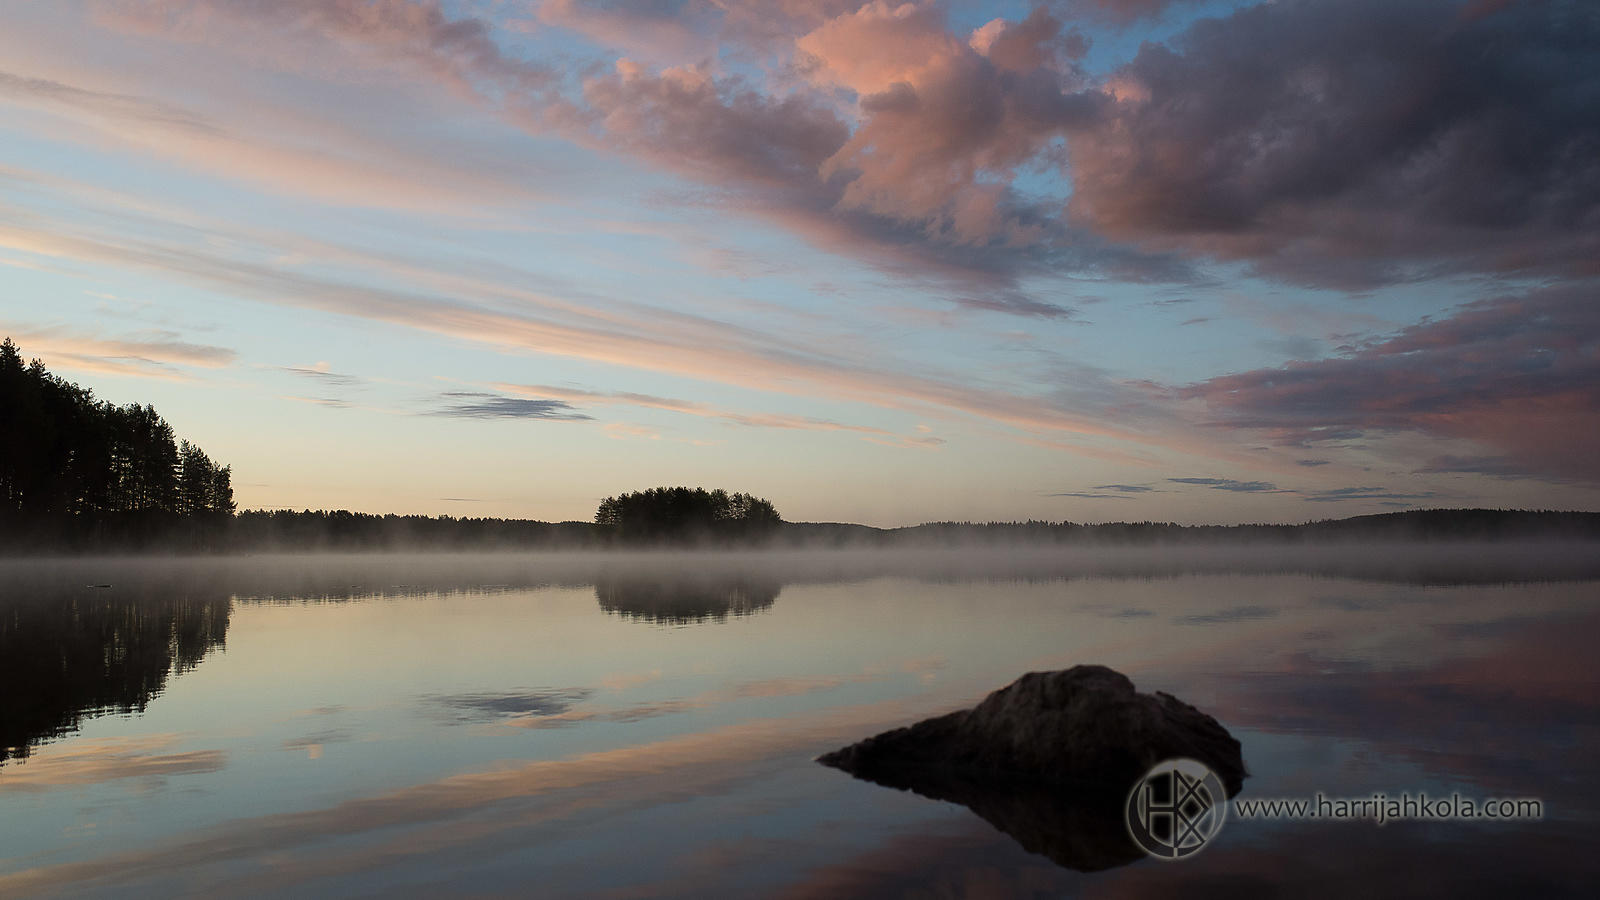 Finland - Jämsä (Sunrise Colors on Kankarisvesi Lake)